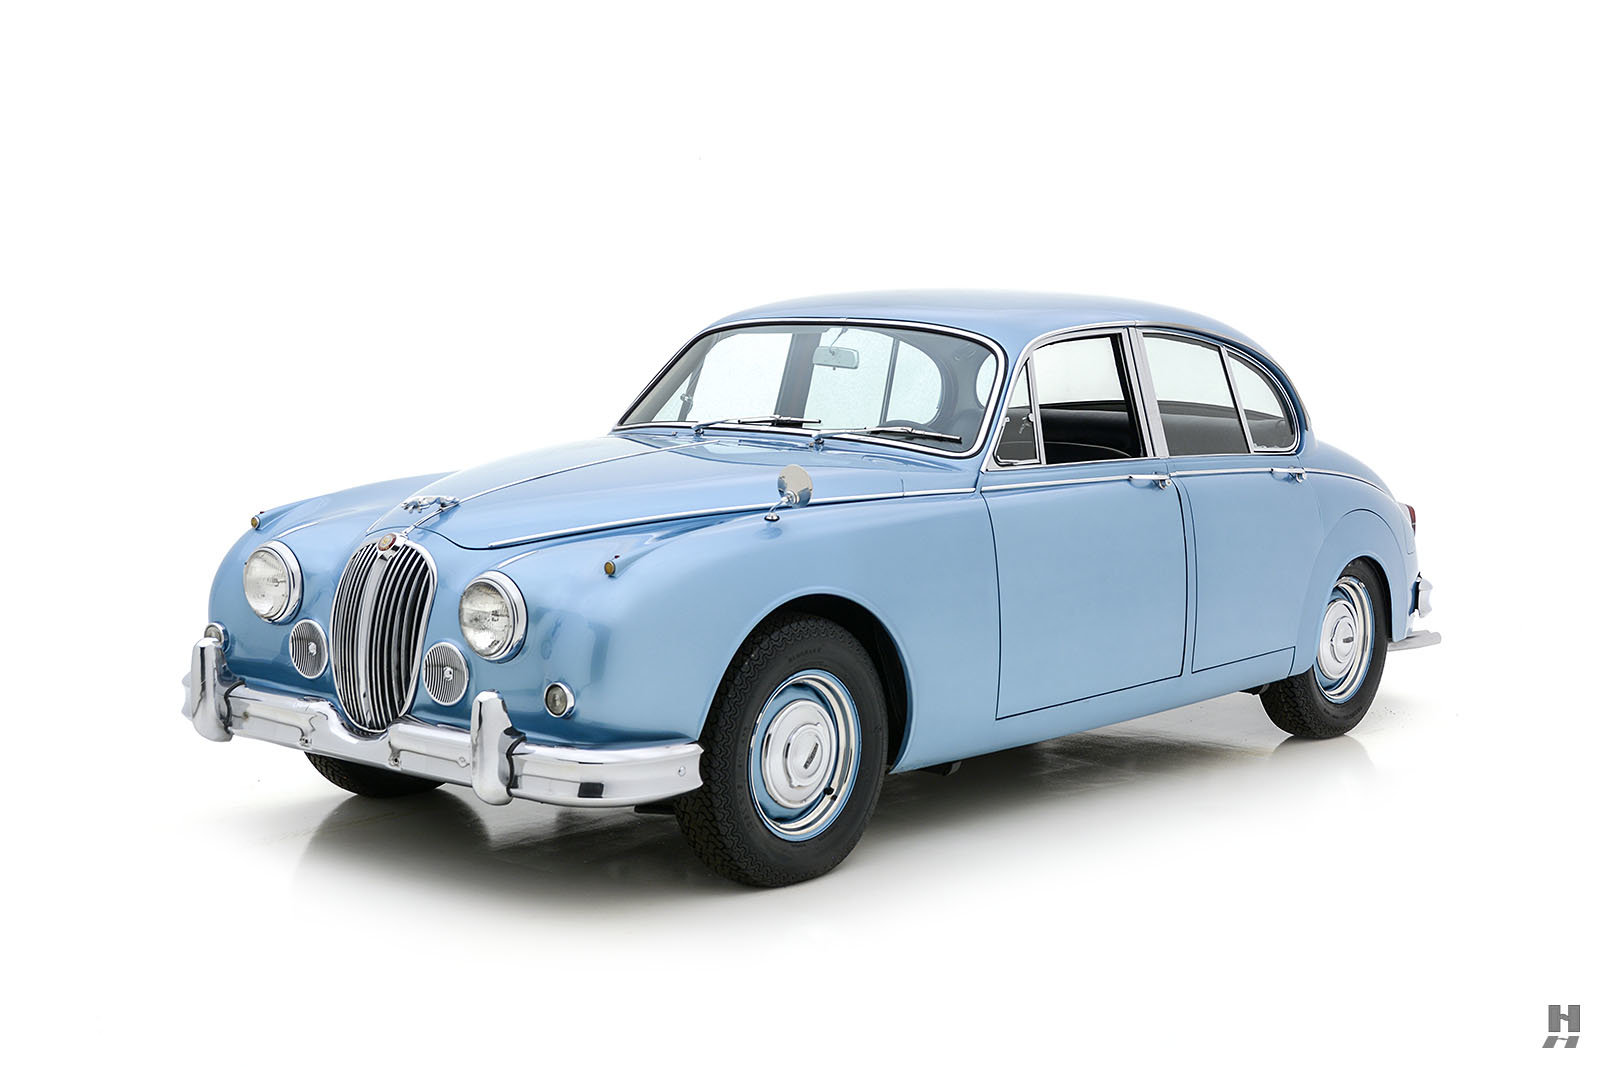 1963 JAGUAR MK II 3.8 SALOON For Sale (picture 1 of 6)